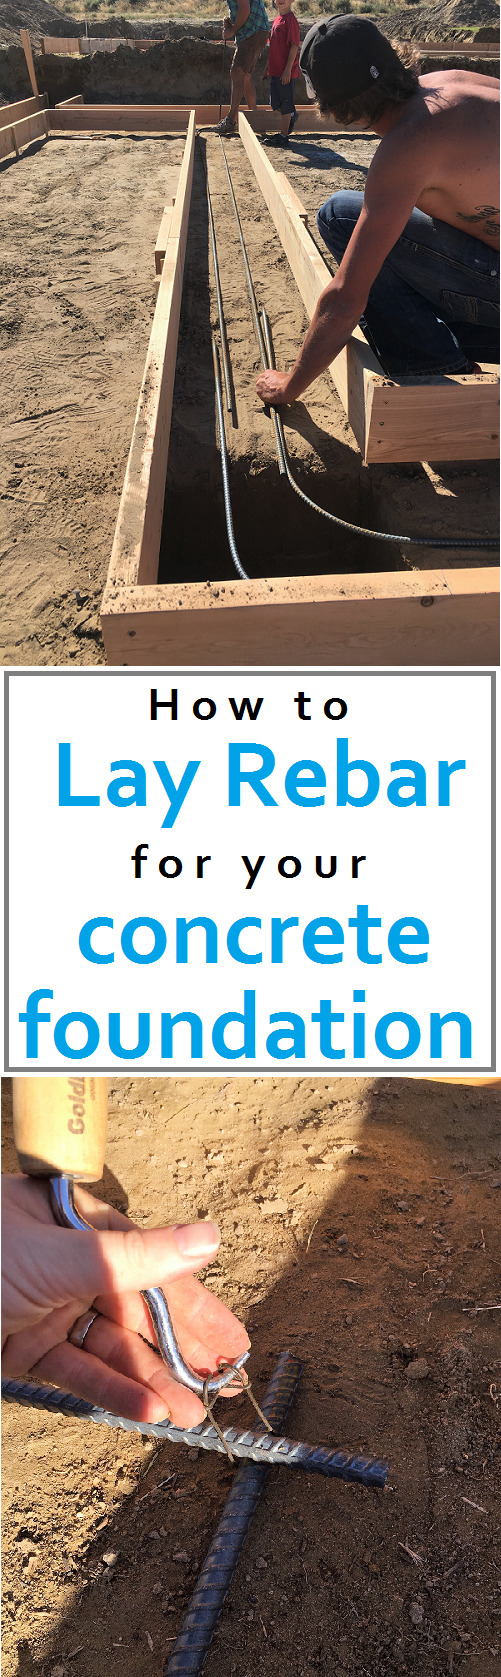 The technology of laying paving slabs with your hands on a dry mix, on a concrete foundation, on sand with cement, on mortar, for screening, for a car